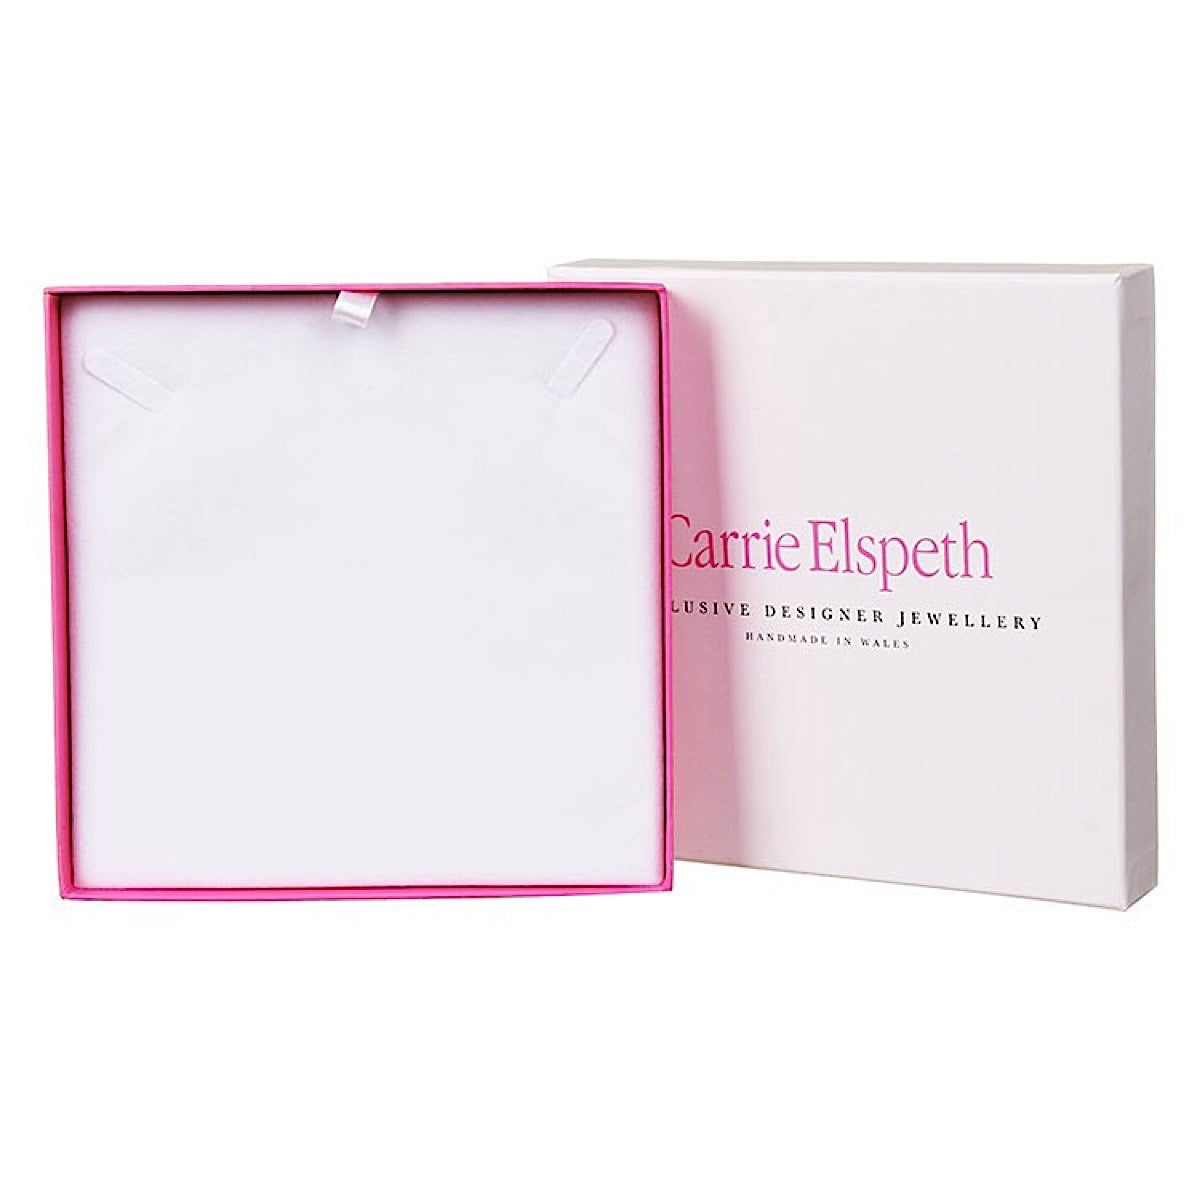 Carrie Elspeth Box